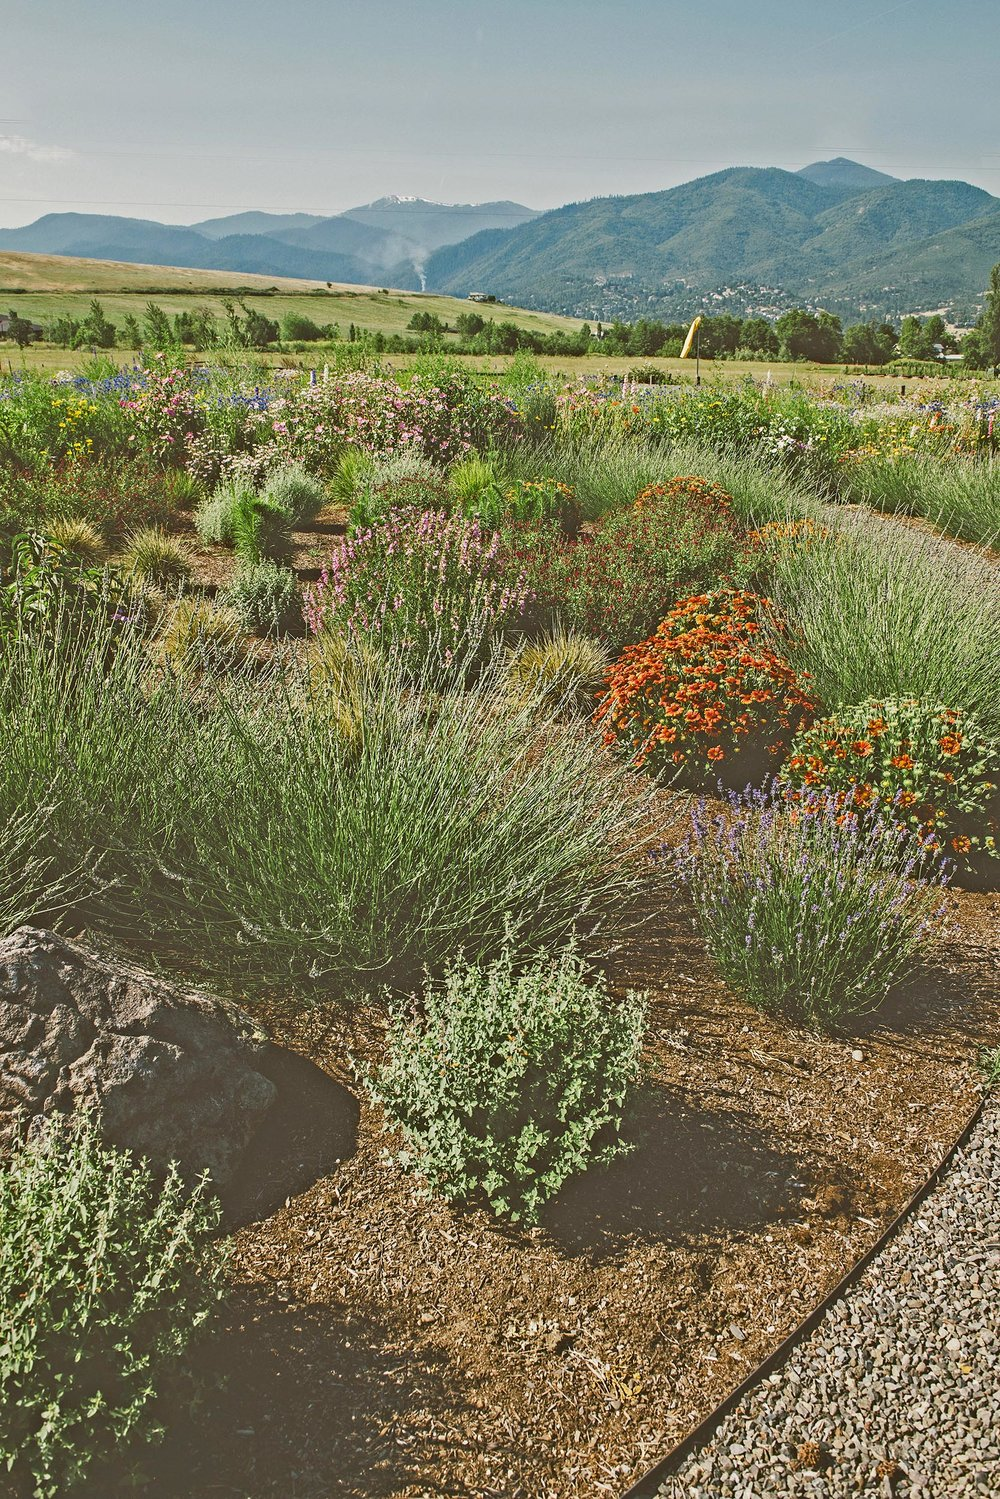 water-wise pollinator garden + gravel pathway + lavendula + red poppies + mixed flowering perennials + bee garden + butterfly garden + ashland oregon hills